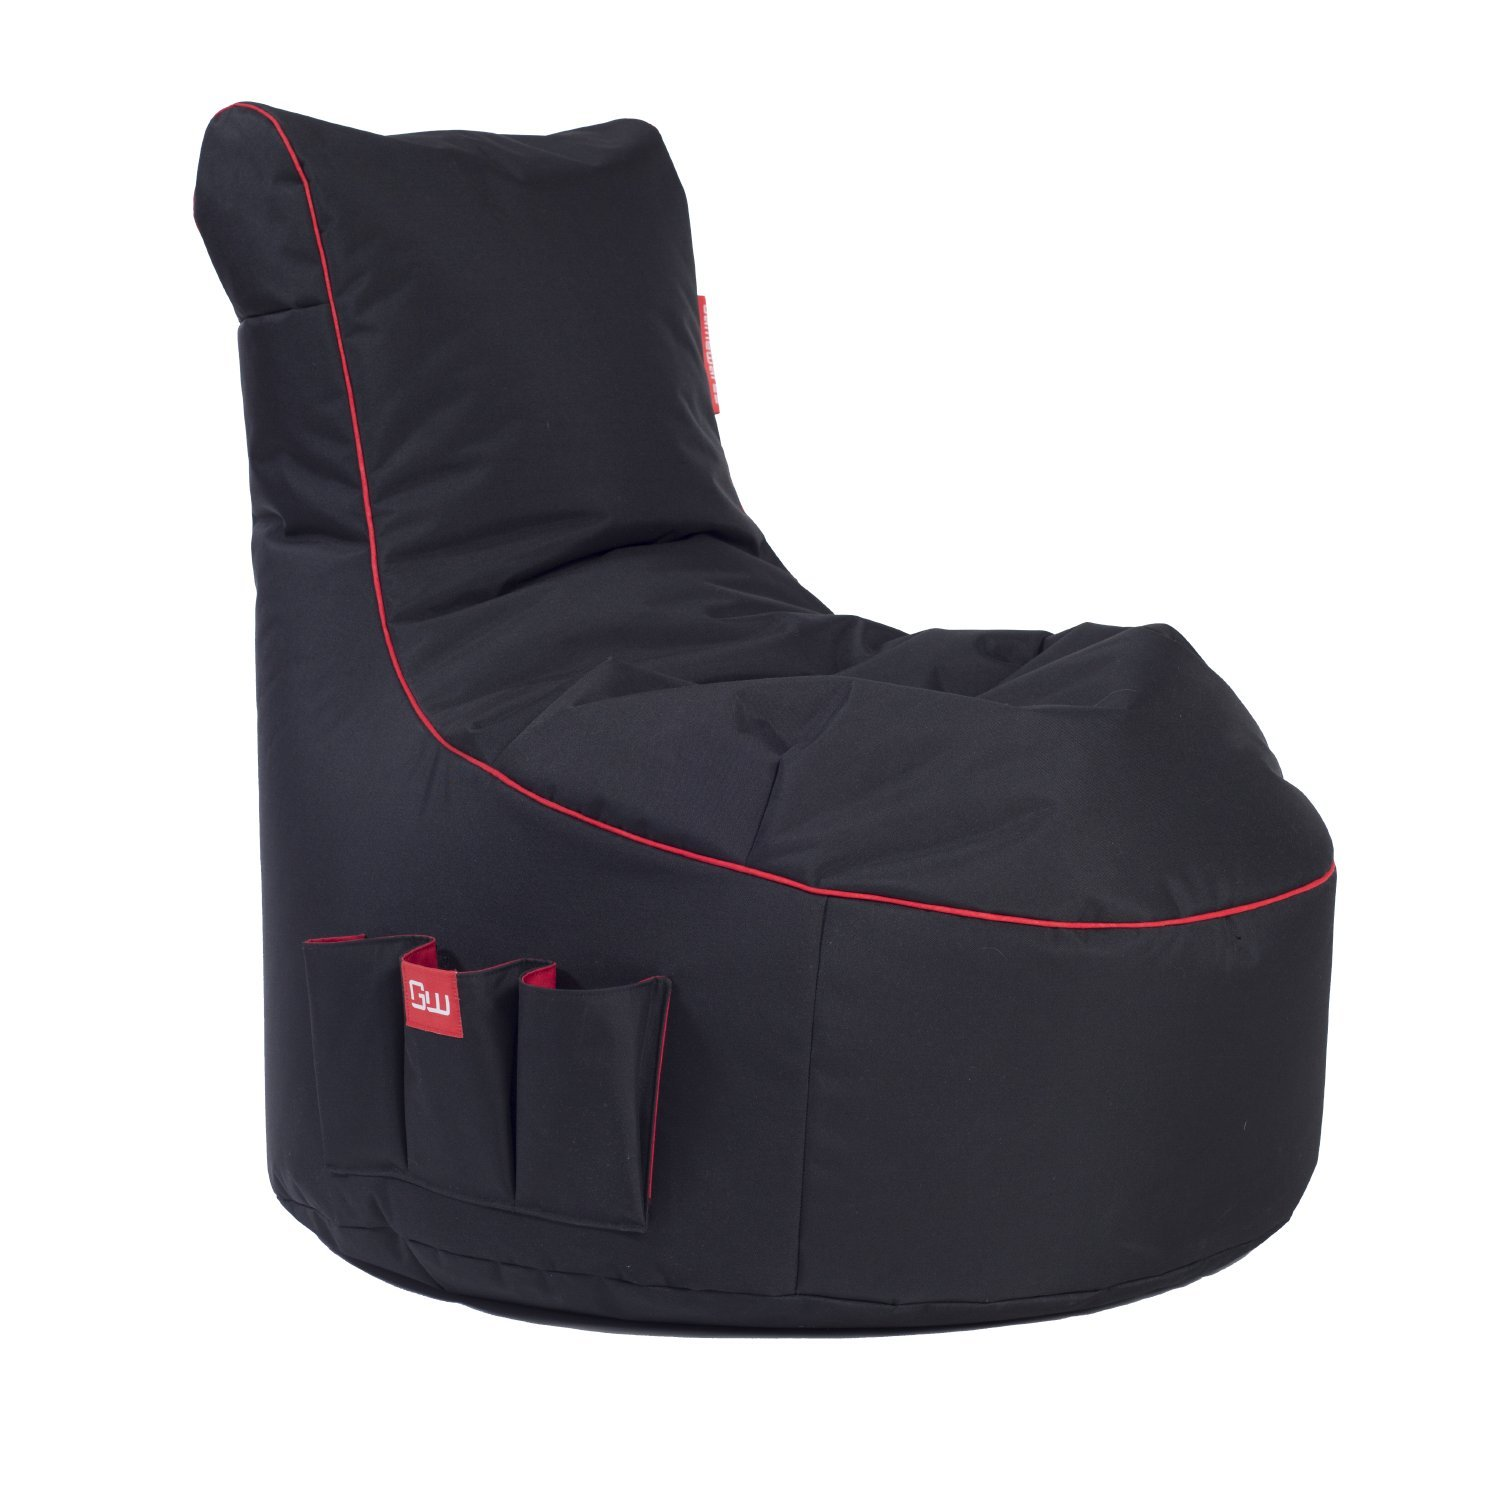 GAMEWAREZ Crimson Thunder 2.0 Gaming Sitzsack Bild